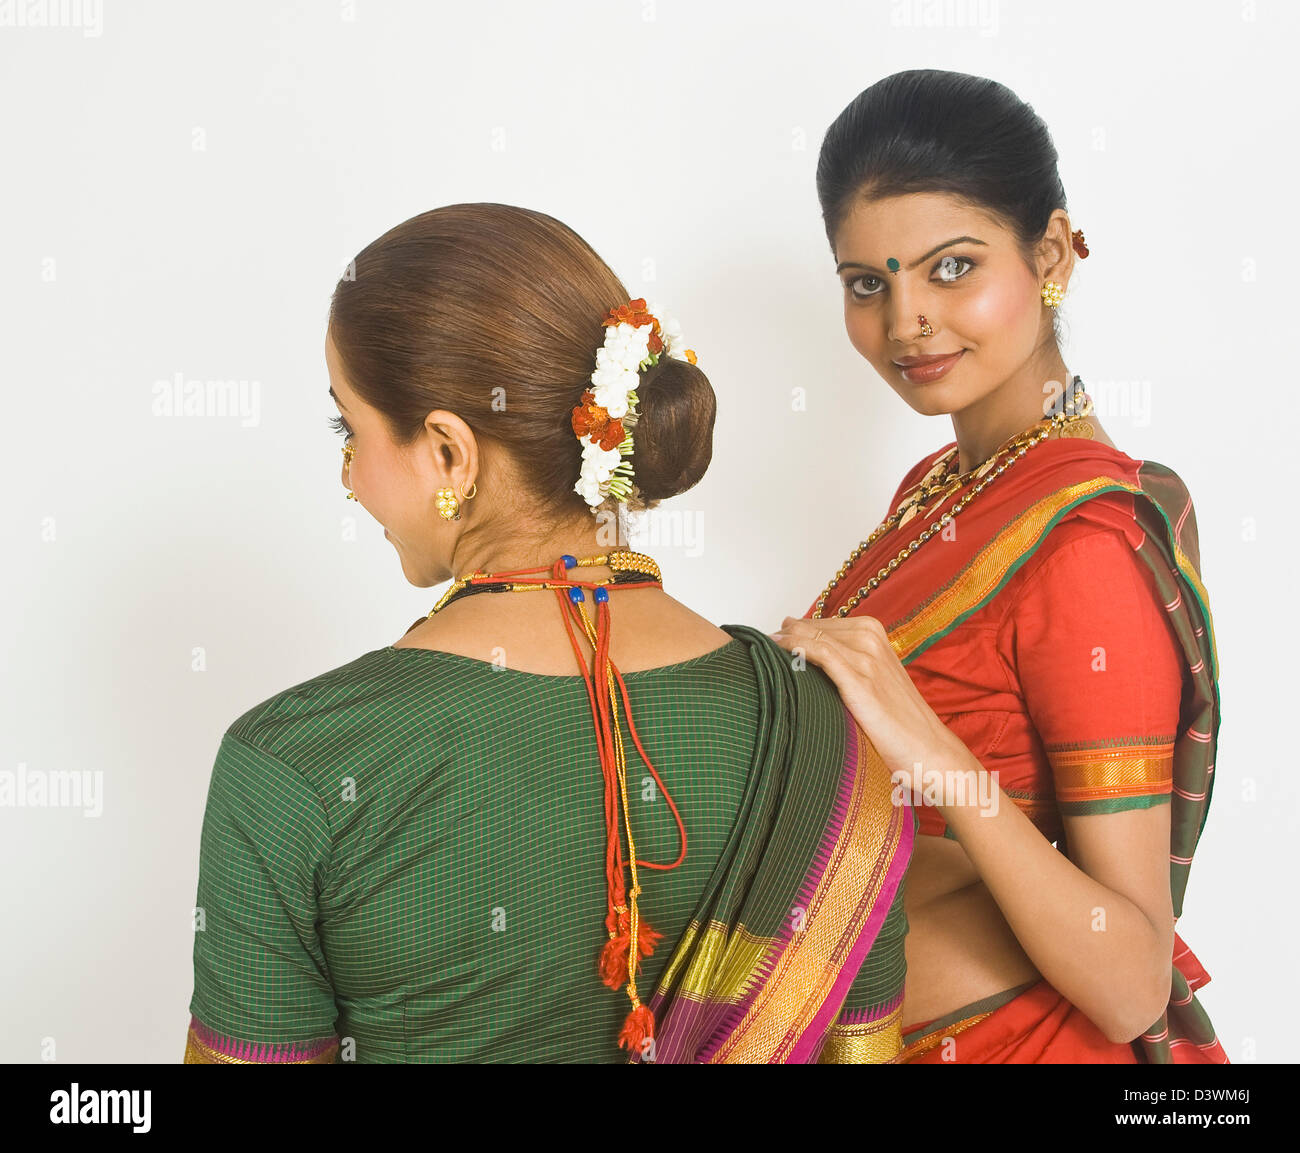 Two female folk dancers standing together in traditional Maharashtrian dress - Stock Image